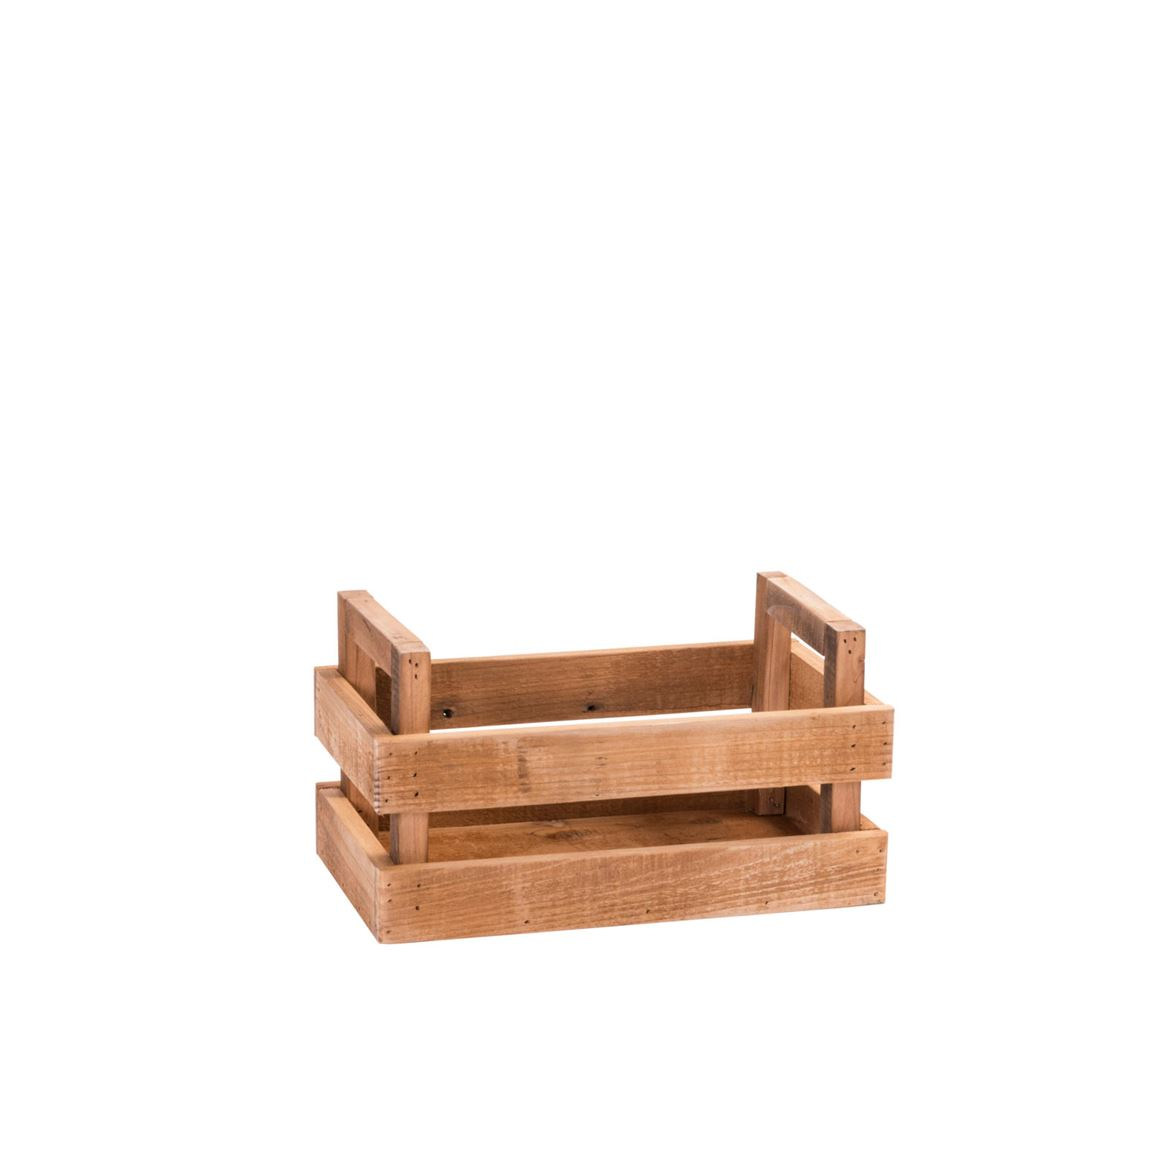 RECYCLE Caixa natural H 11 x W 29 x D 17 cm_recycle-caixa-natural-h-11-x-w-29-x-d-17-cm